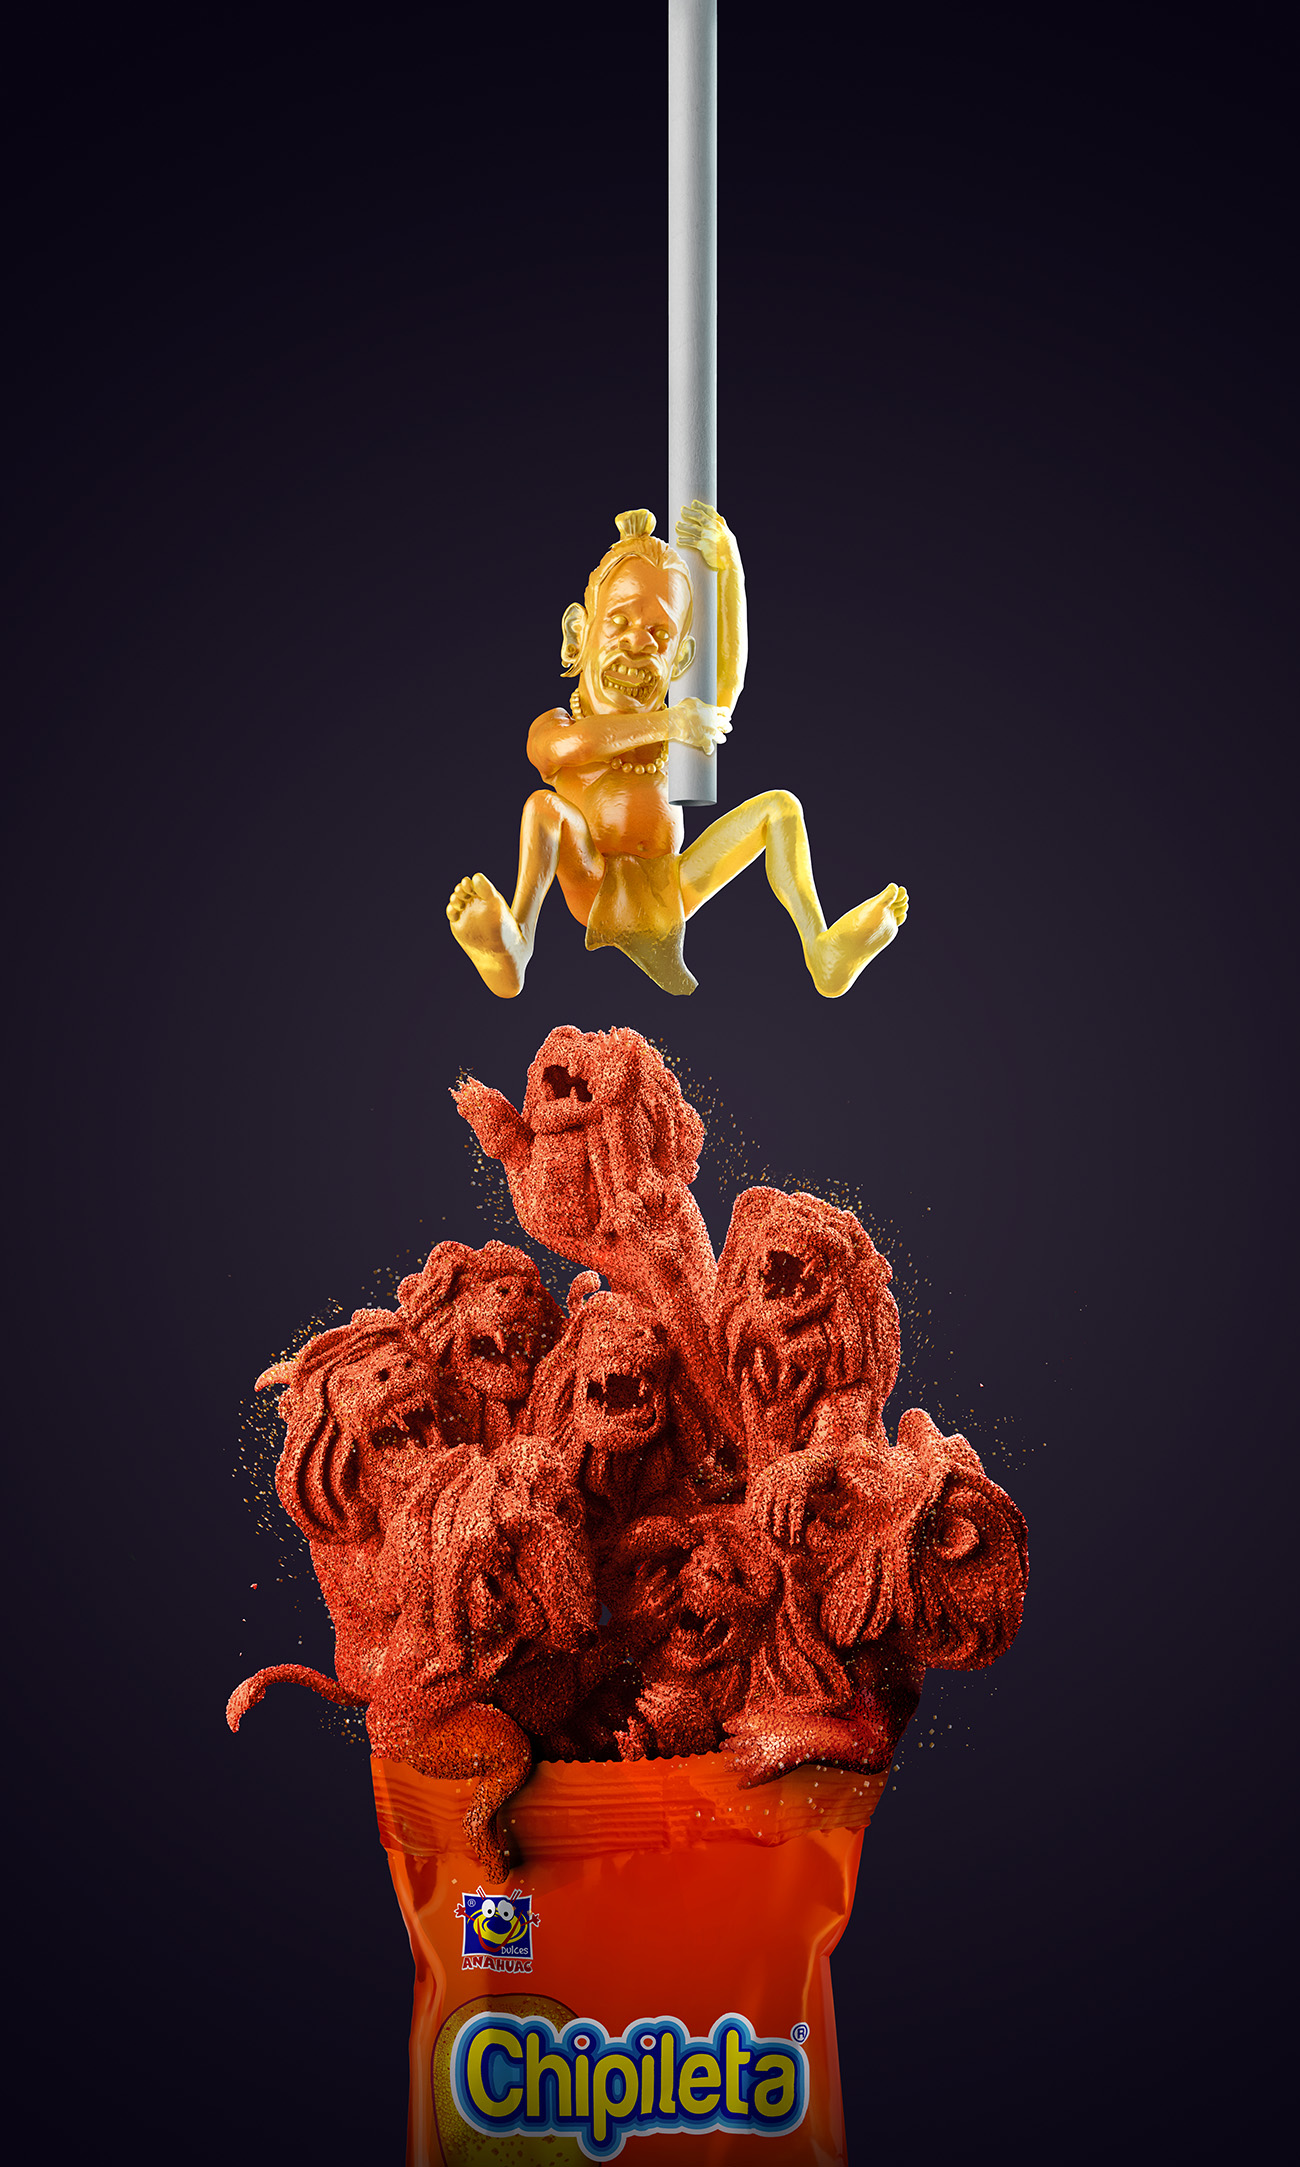 Chipileta - Lions - Lamano Studio - Illustration - Post Production - CGI - Animation - Handcraft - Photography